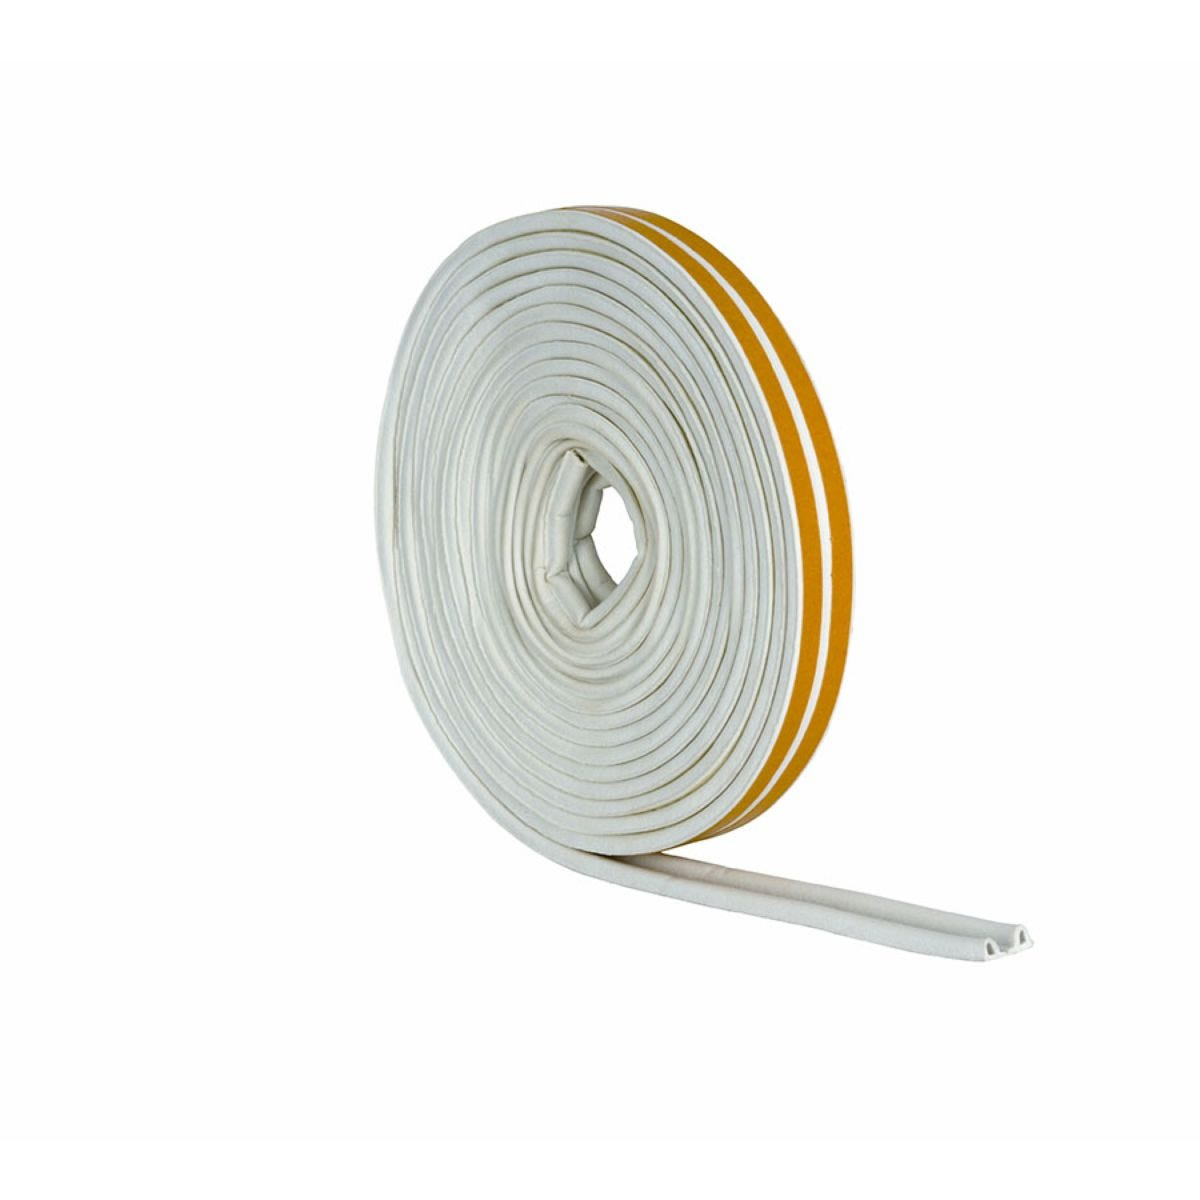 Stormguard 'P' Profile Rubber Draught Seal - 5m, White